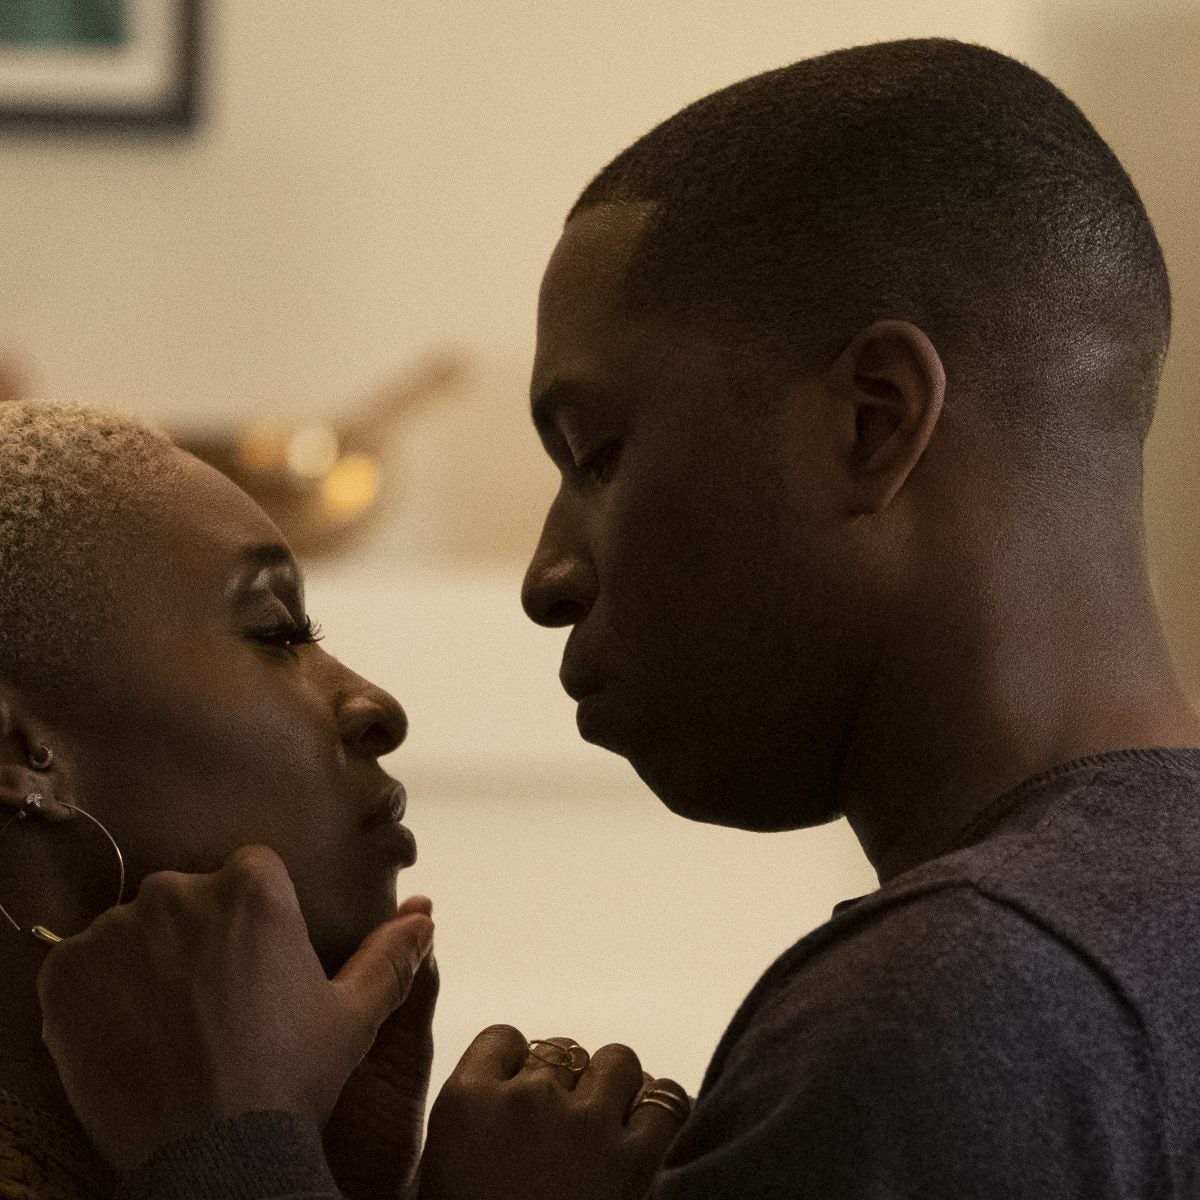 First Look: Cynthia Erivo And Leslie Odom Jr. Star In 'Needle in a Timestack'